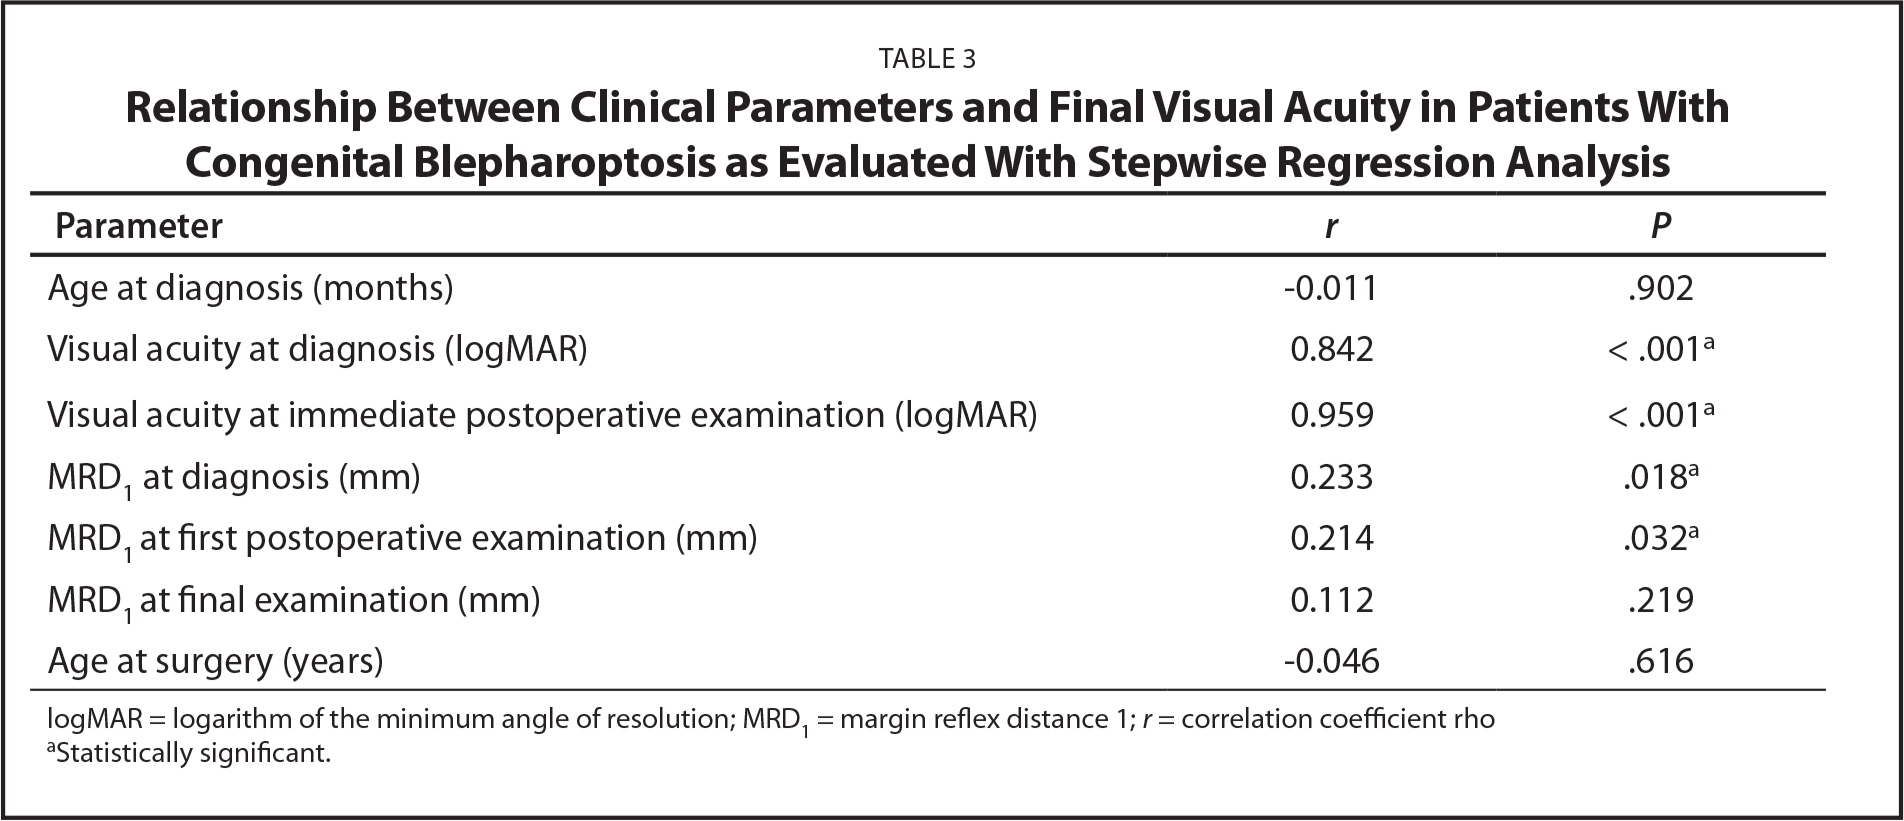 Relationship Between Clinical Parameters and Final Visual Acuity in Patients With Congenital Blepharoptosis as Evaluated With Stepwise Regression Analysis